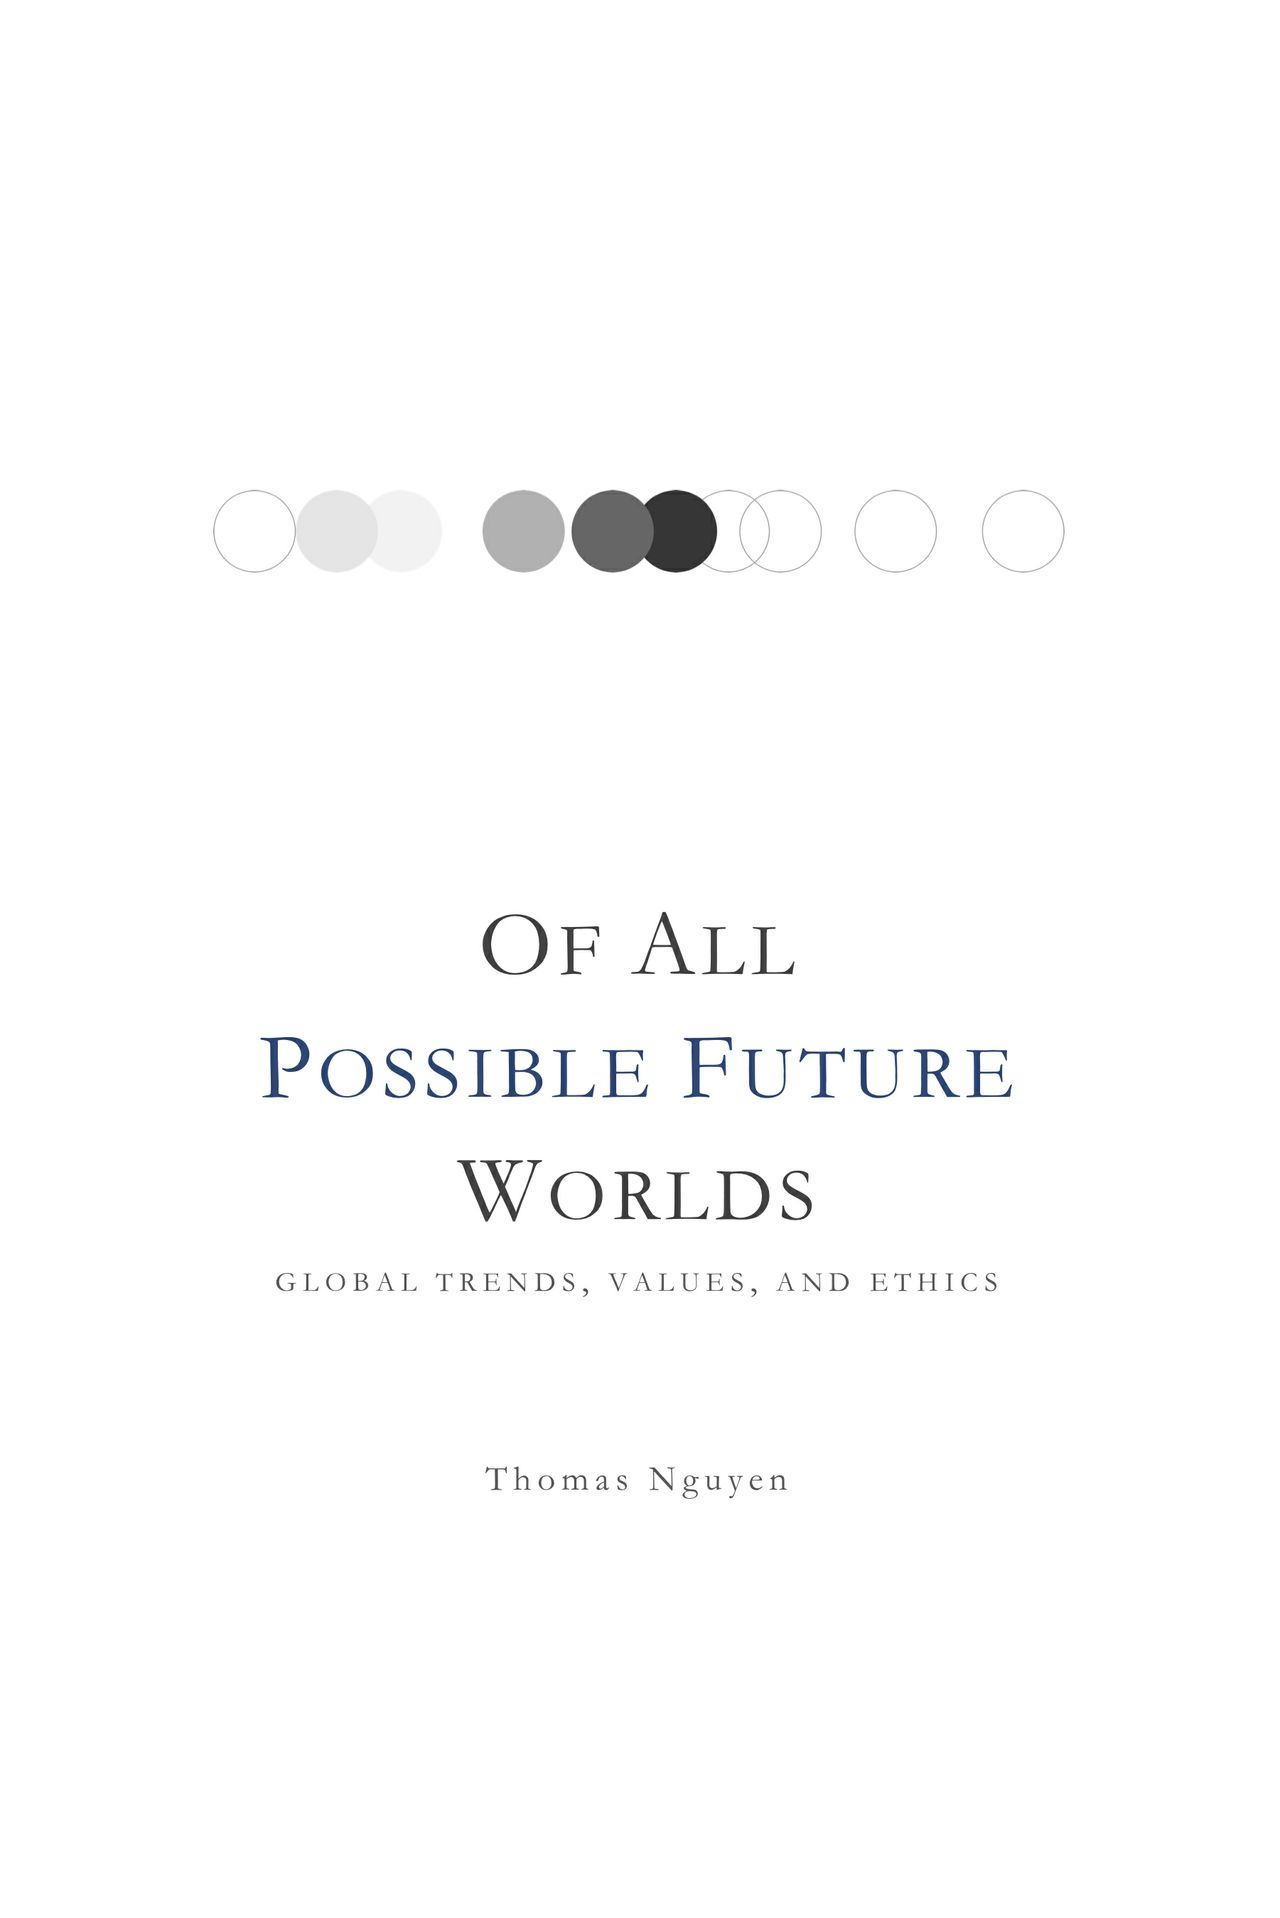 Of All Possible Future Worlds: Global Trends, Values, and Ethics